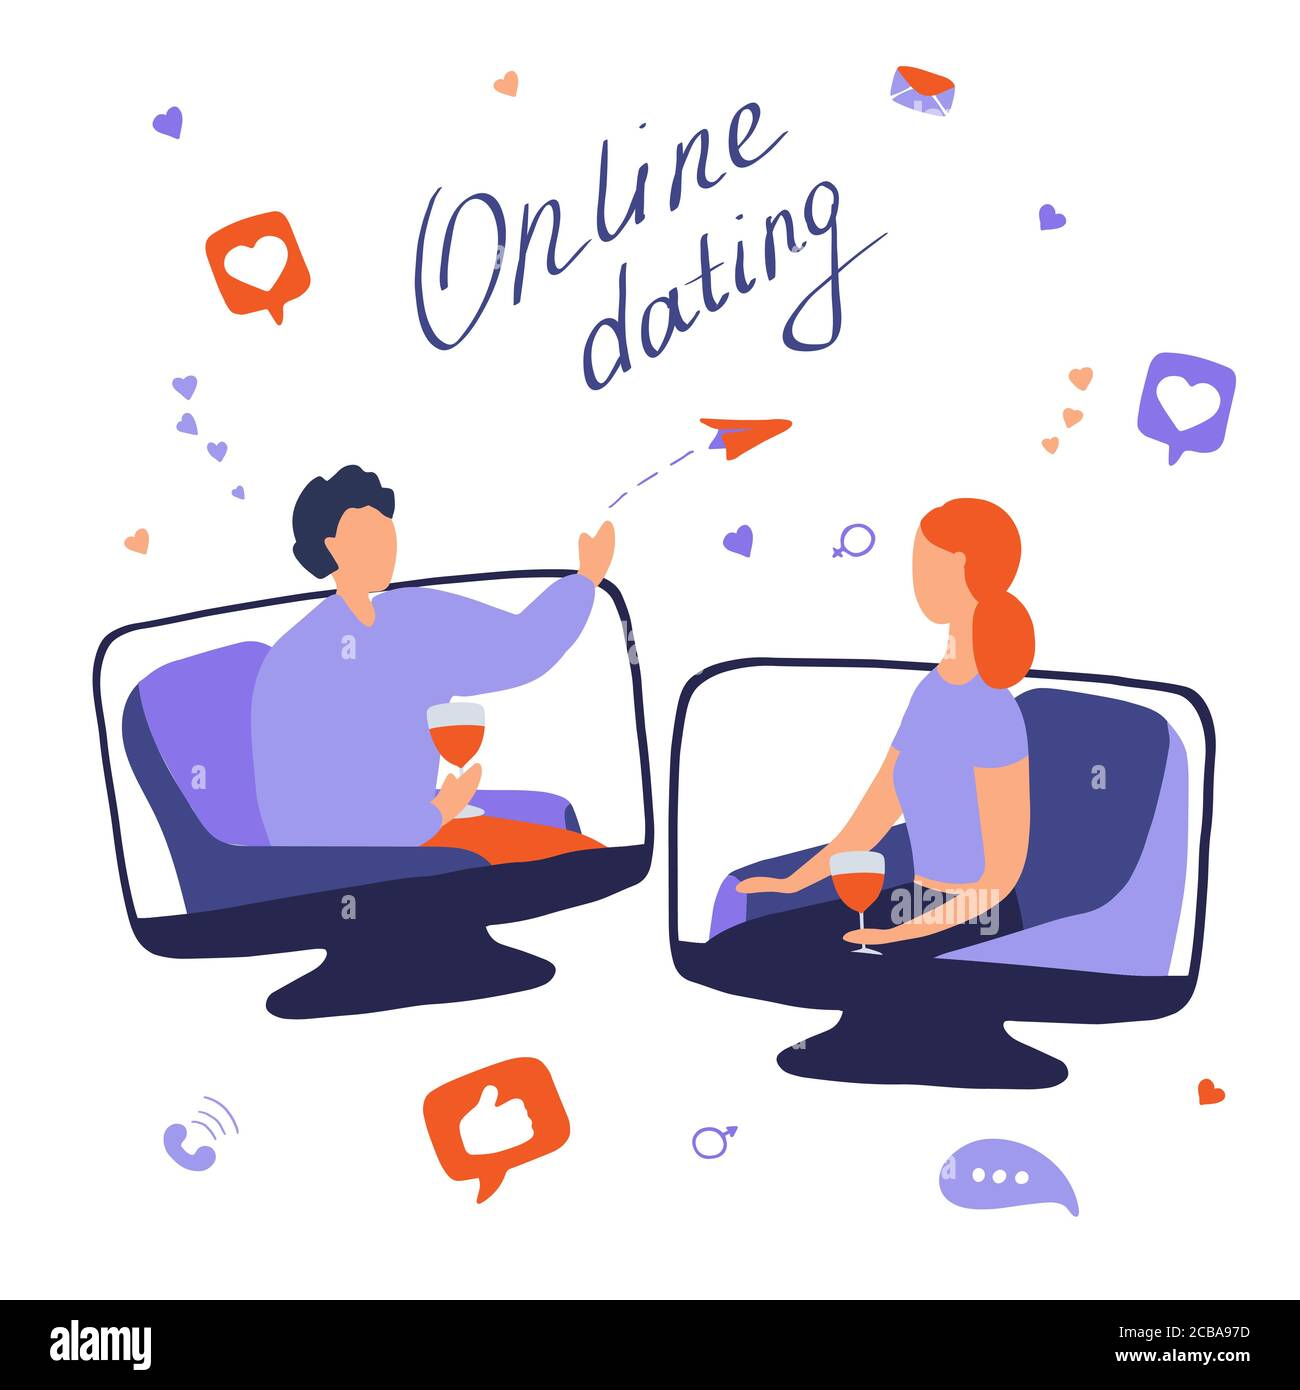 Online dating concept. Young woman and man talking online. Couple met on dating site and communicate on Internet. Long distance relationships Stock Vector